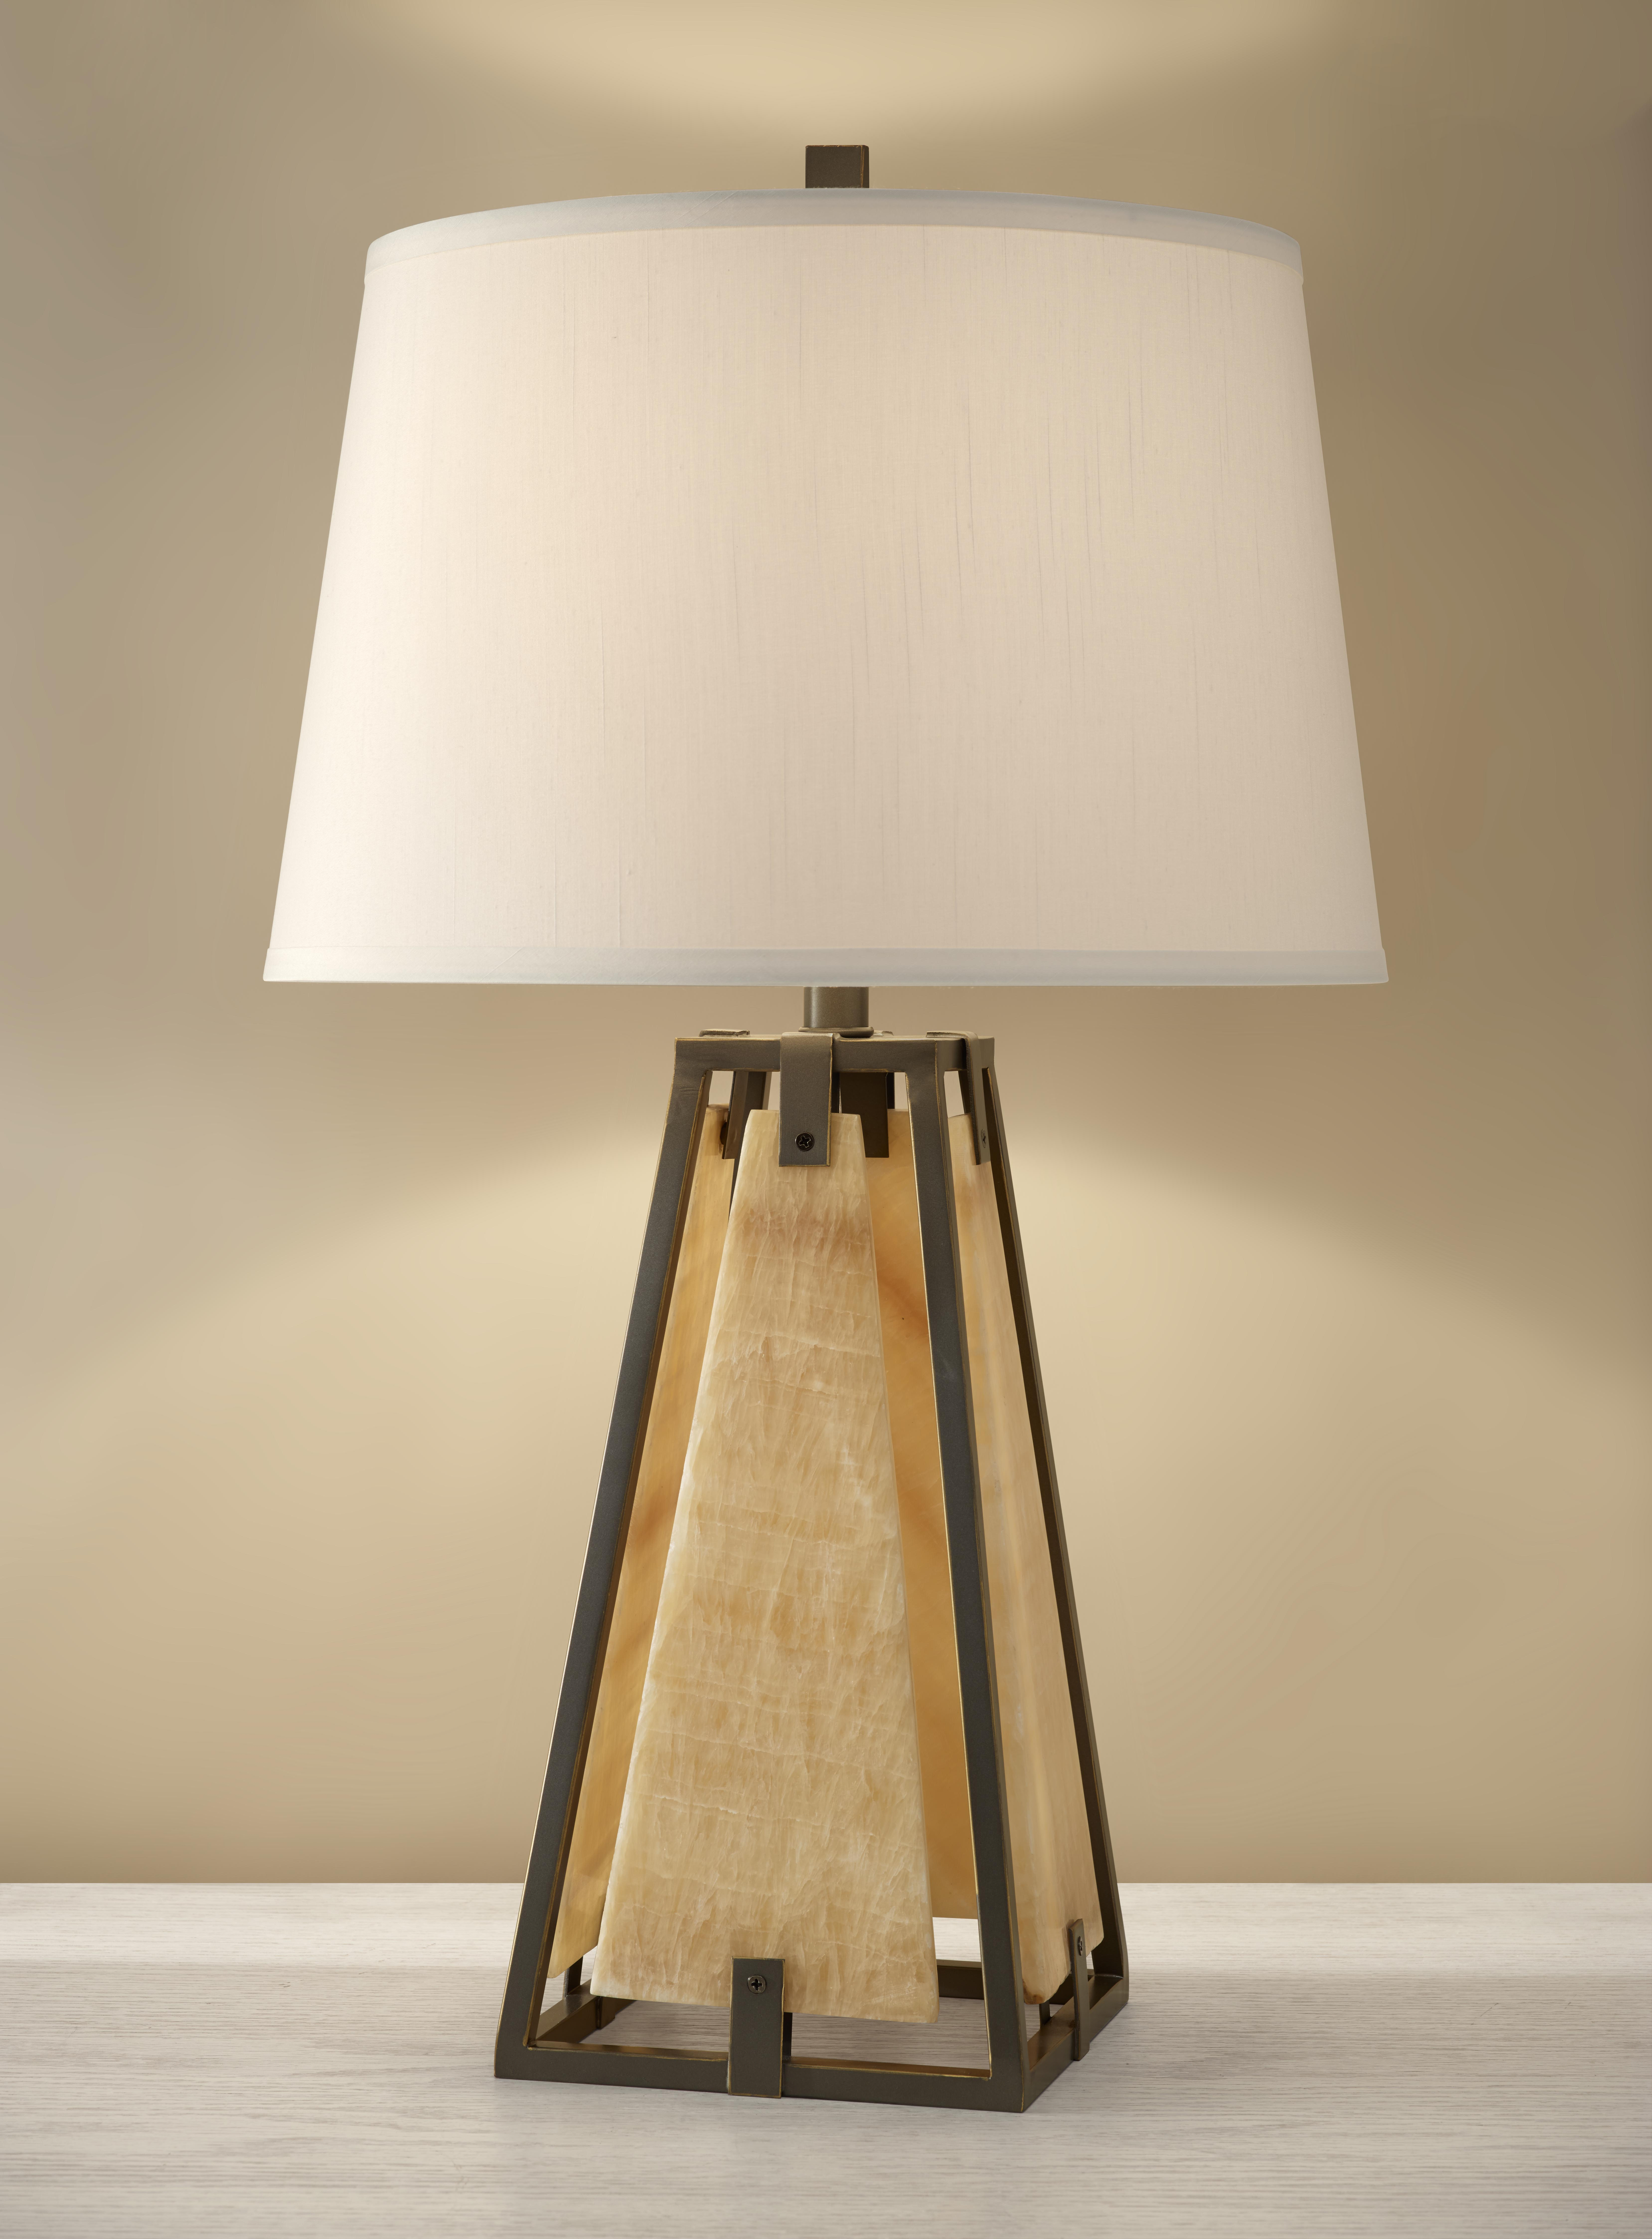 Feiss to Debut New Lamps and Mirrors at Spring High Point ...